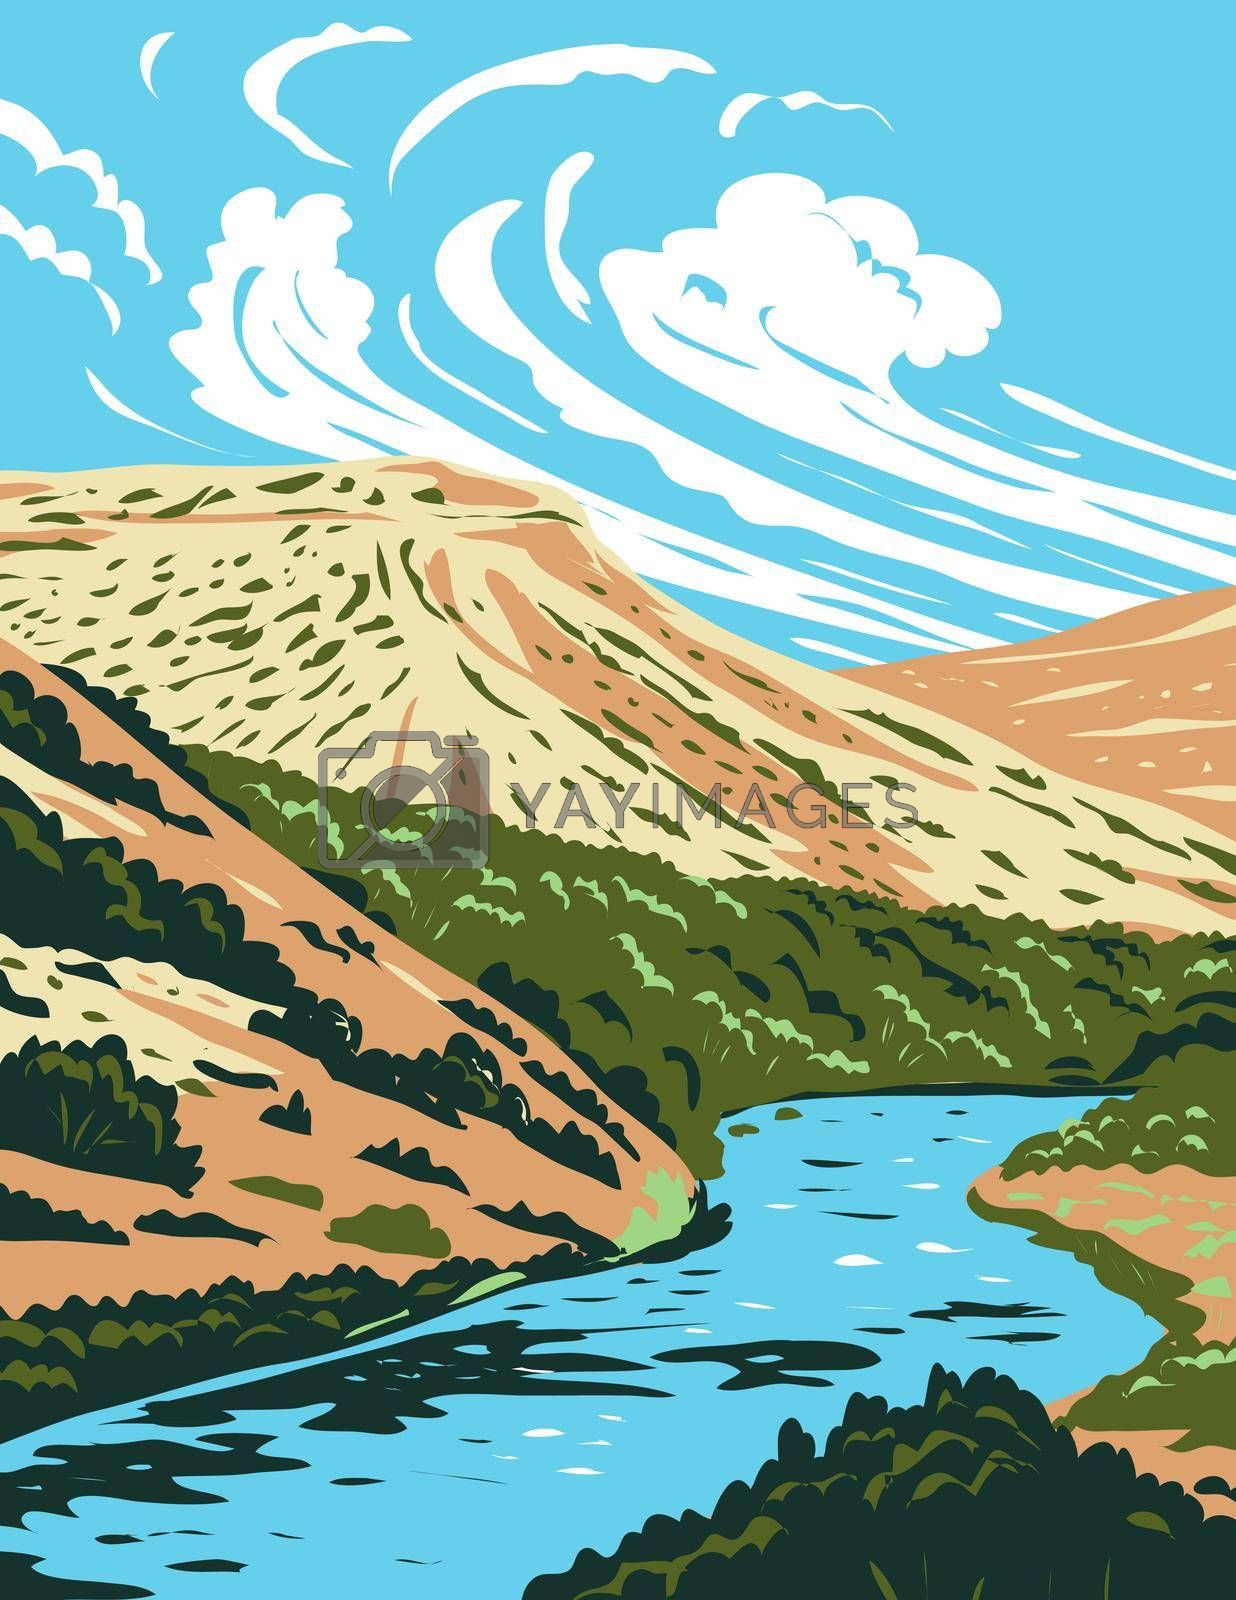 WPA poster art of the Rio Grande, a principal river in the United States and Mexico that begins in Colorado and flows to Gulf of Mexico in works project administration or federal art project style.